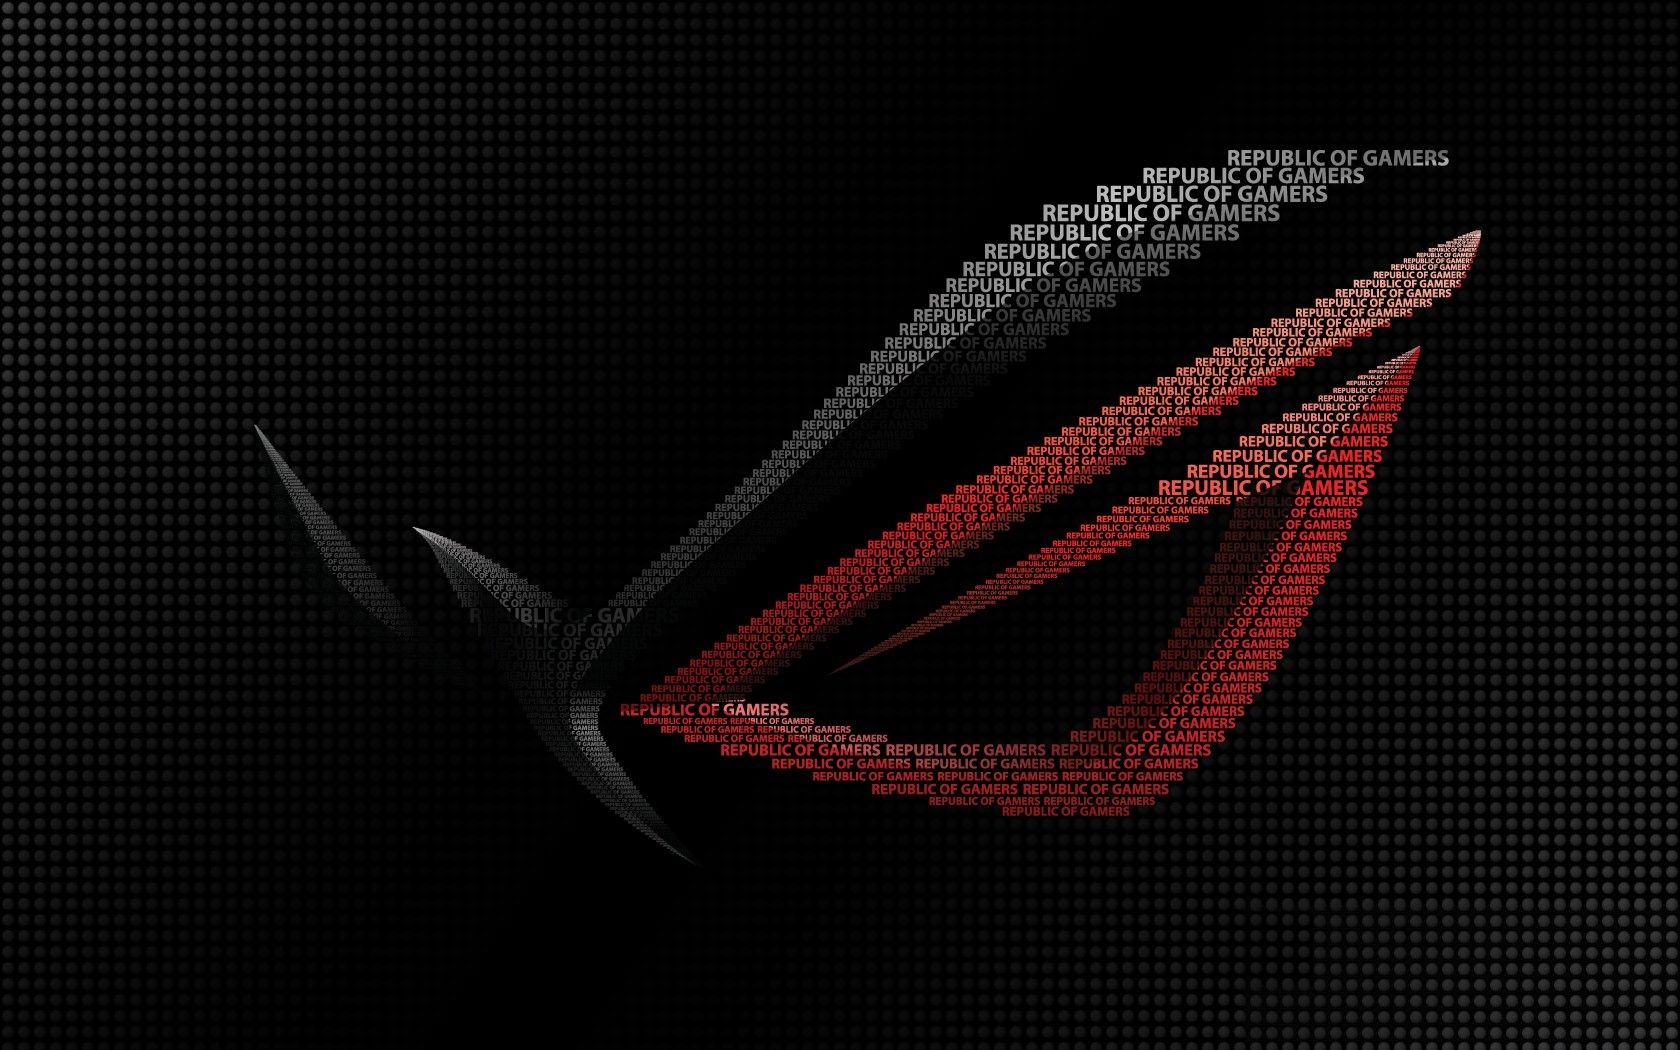 Wallpaper Hd Pc Rog